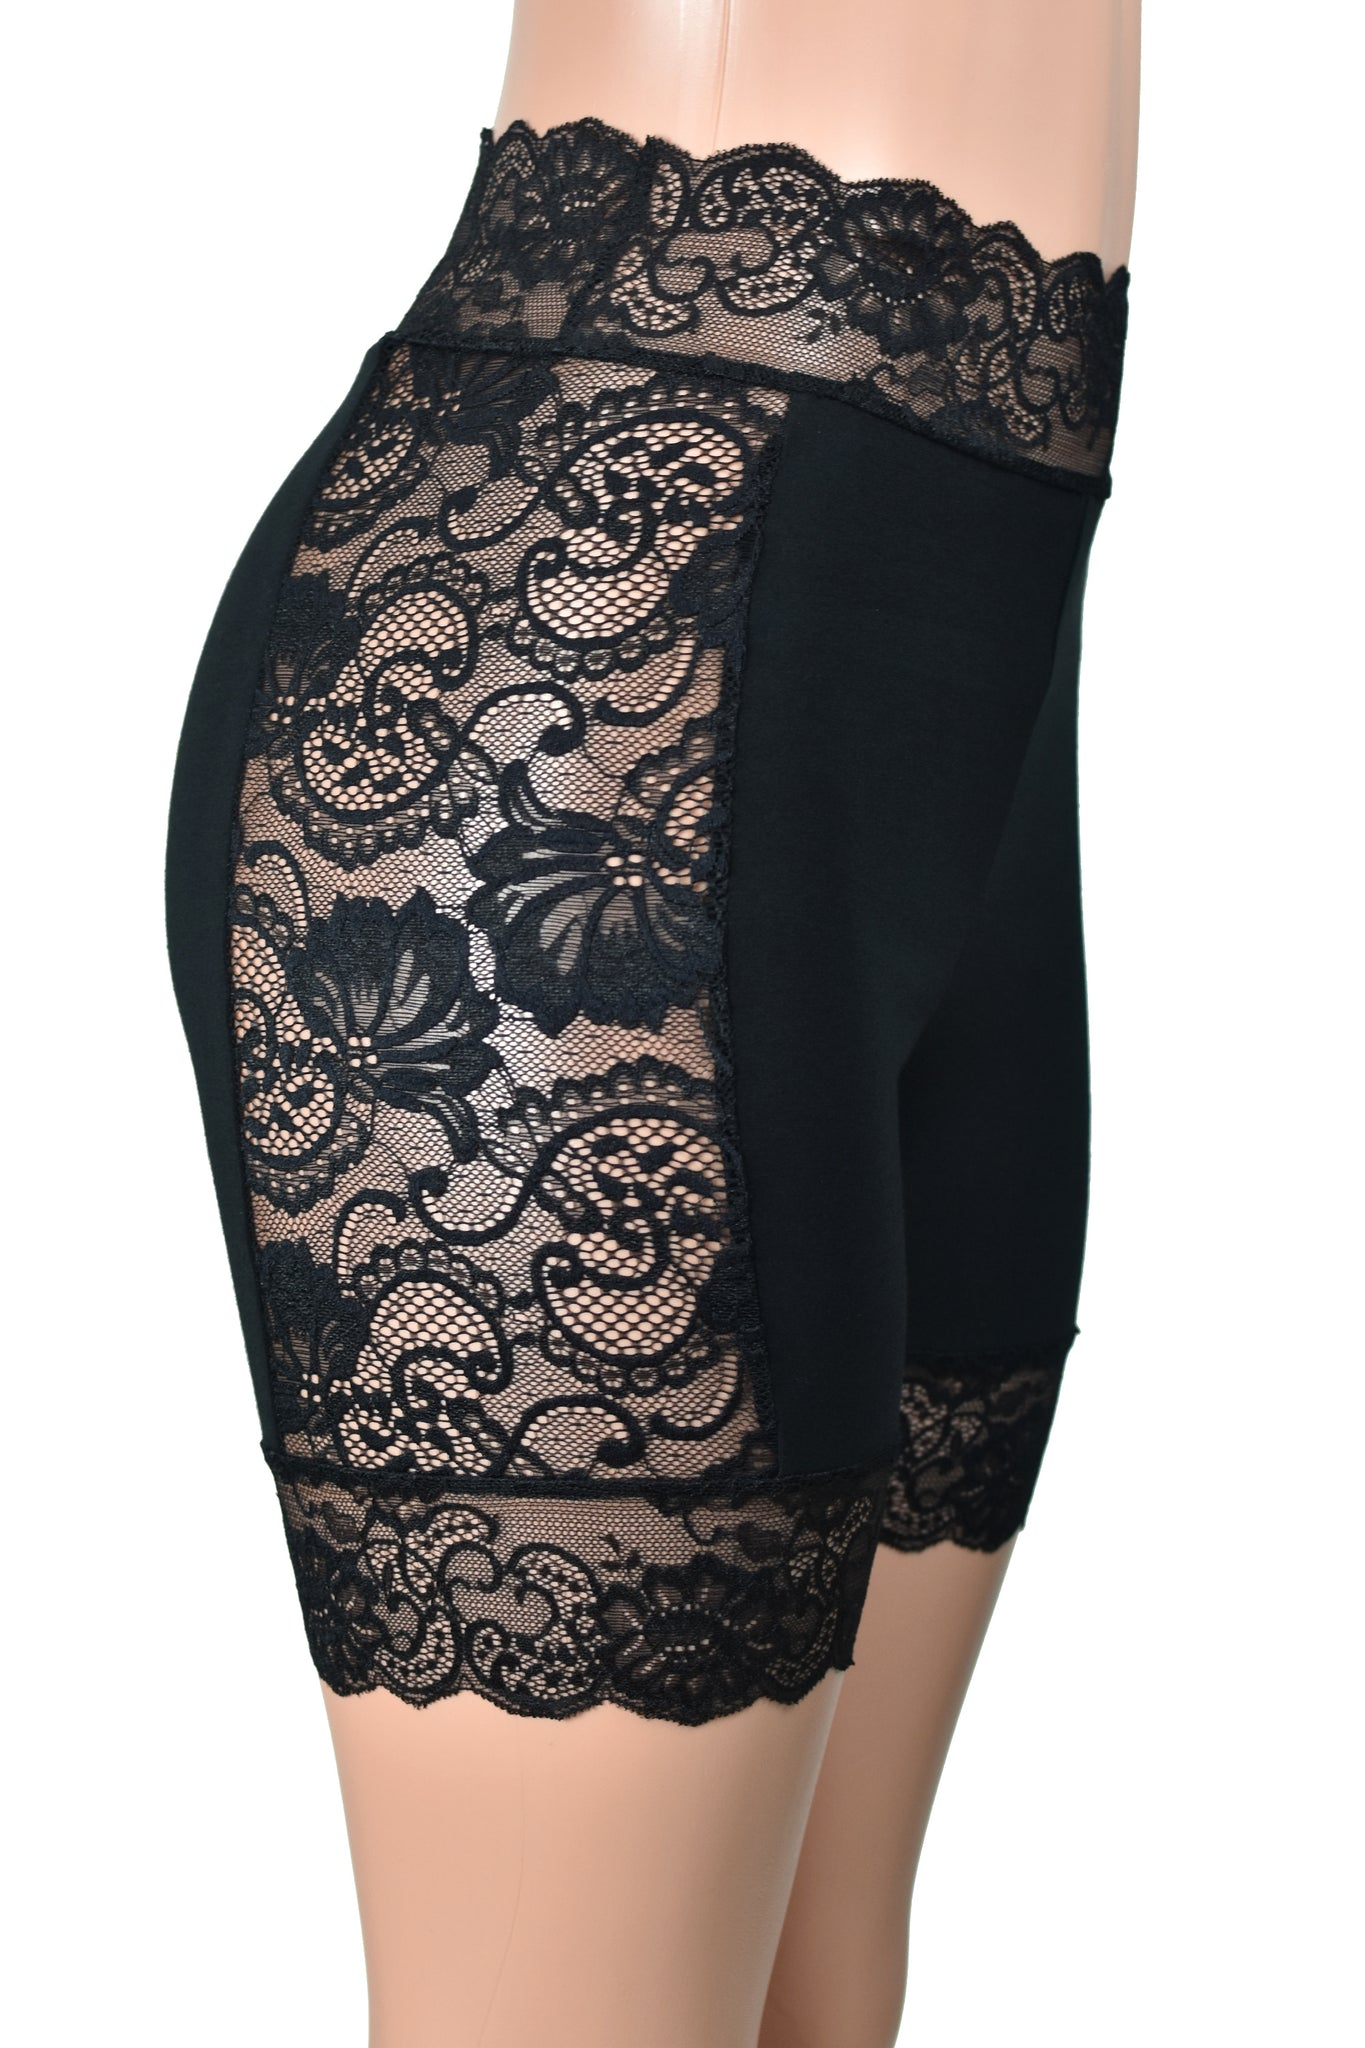 "High-Waisted Lace Side Black Stretch Lace Shorts (5"" inseam)"